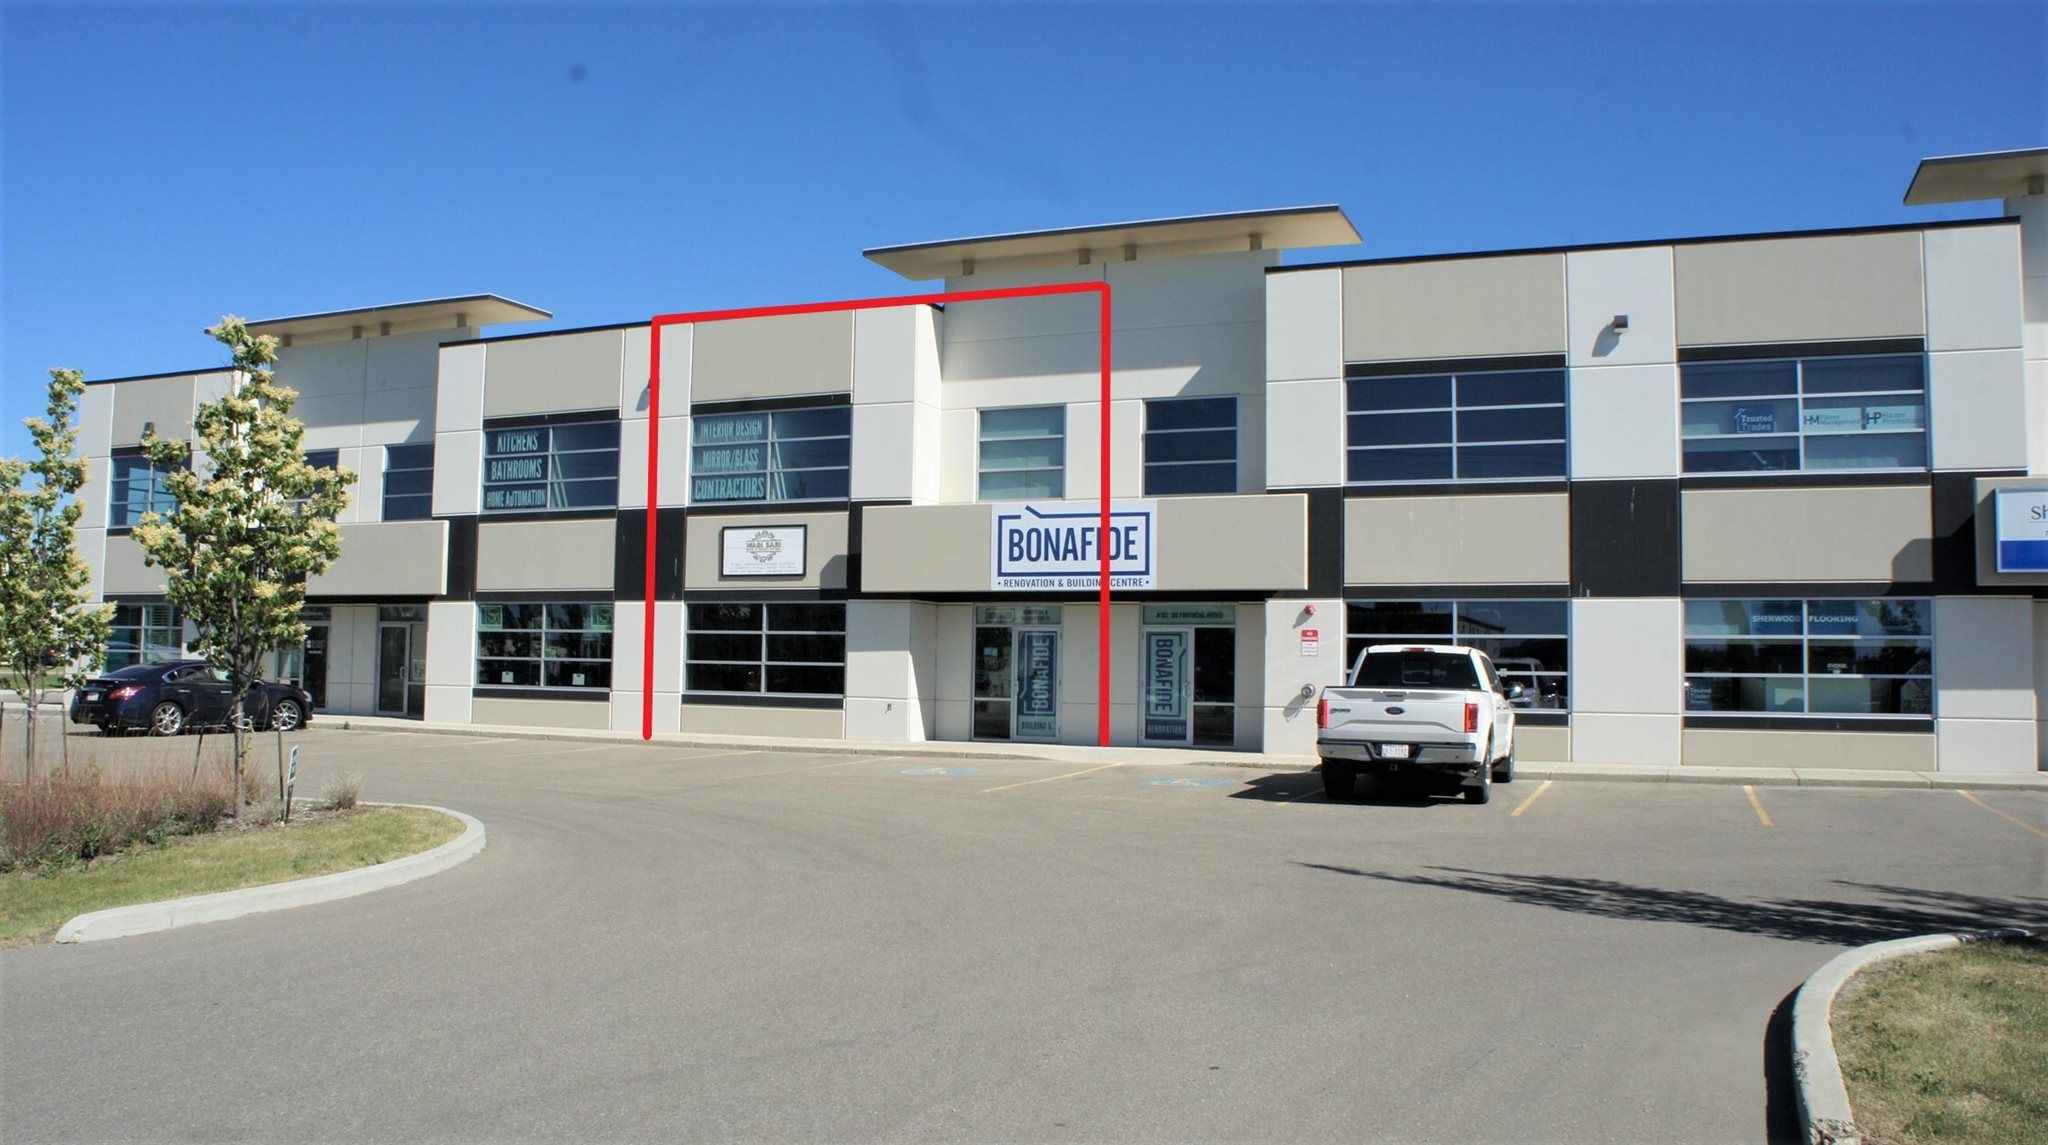 Main Photo: 103 108 PROVINCIAL Avenue: Sherwood Park Industrial for sale or lease : MLS®# E4252869